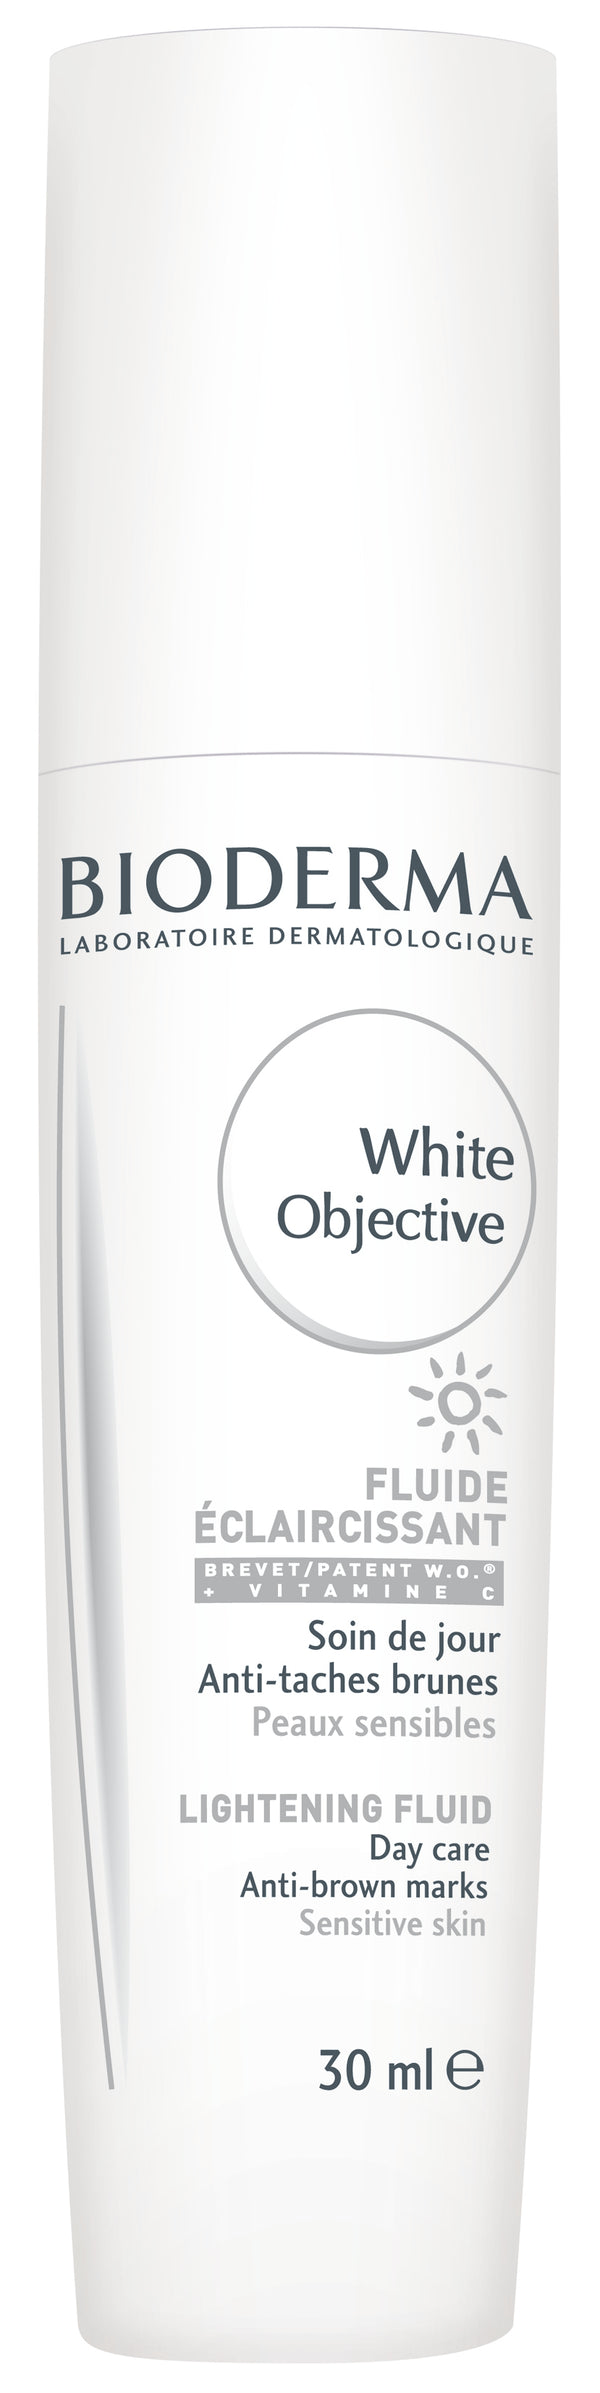 White Objective Fluid